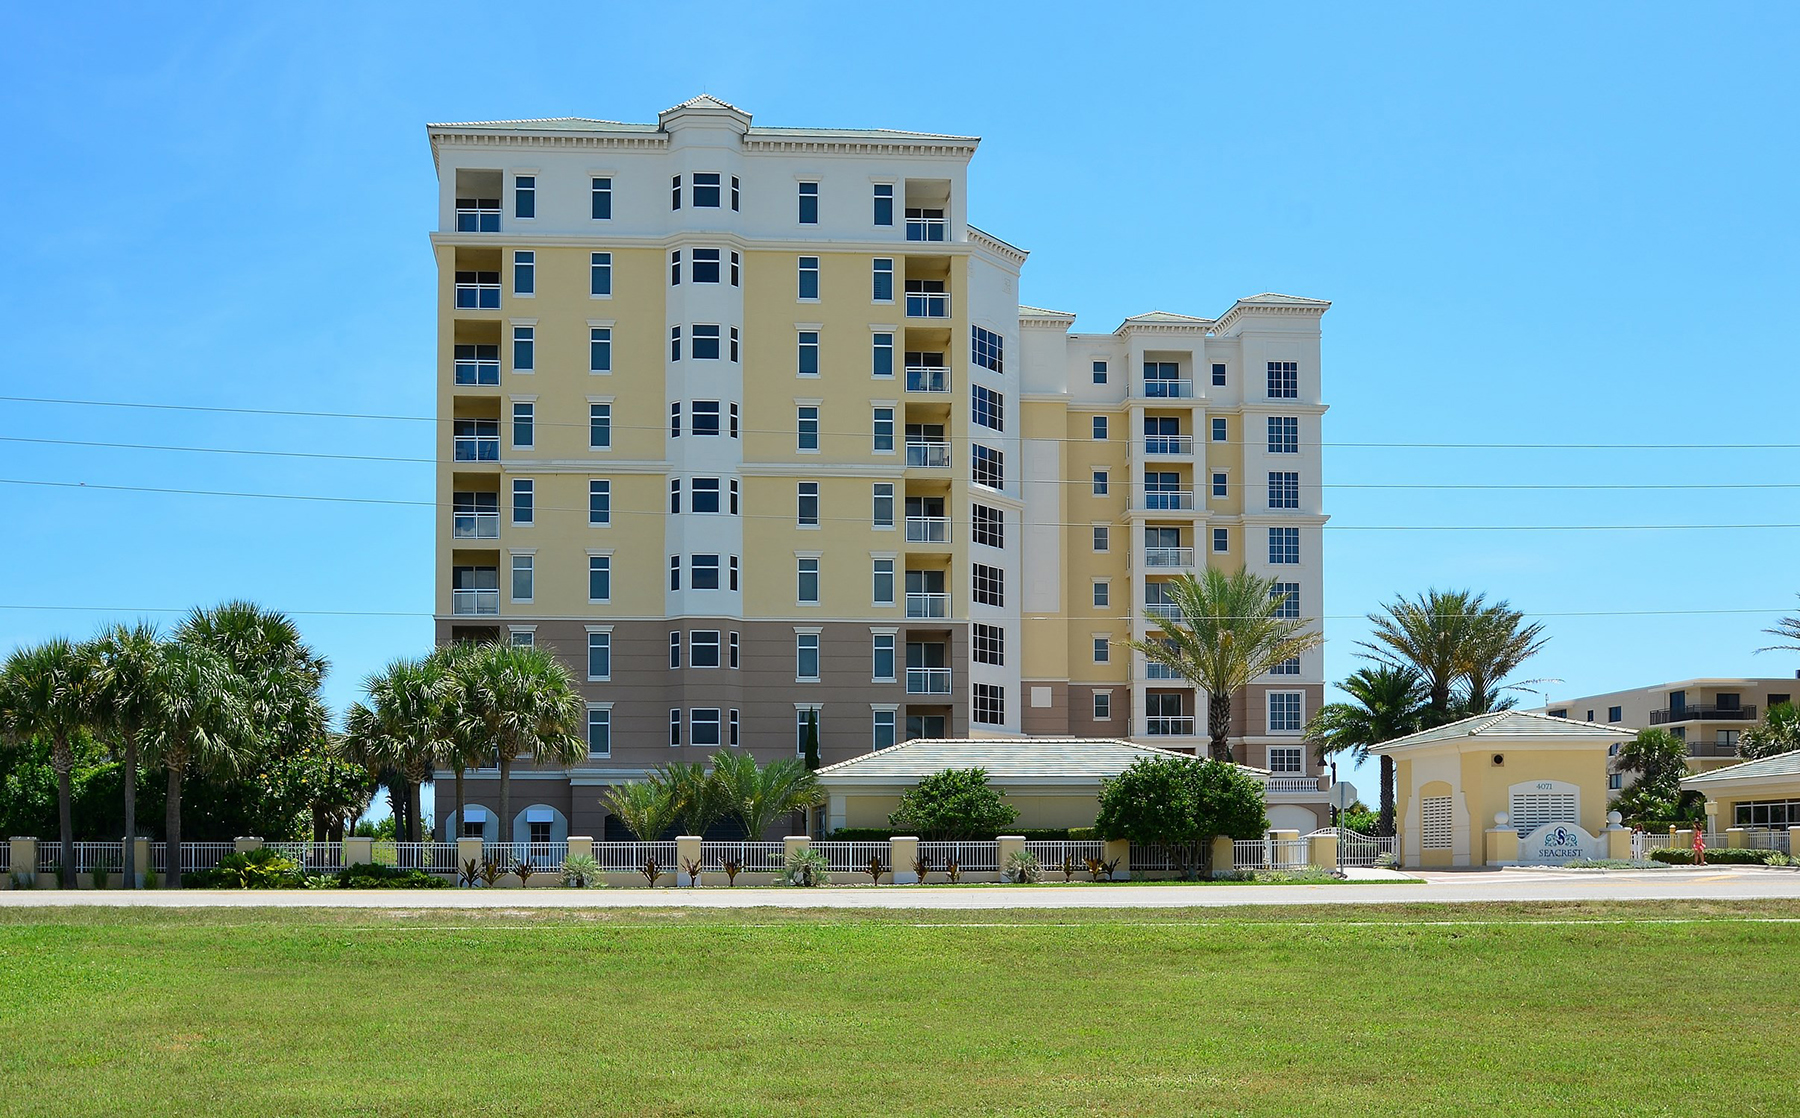 Condominium for Sale at NEW SMYRNA BEACH - FLORIDA 4071 S Atlantic Ave 801, New Smyrna Beach, Florida 32169 United States